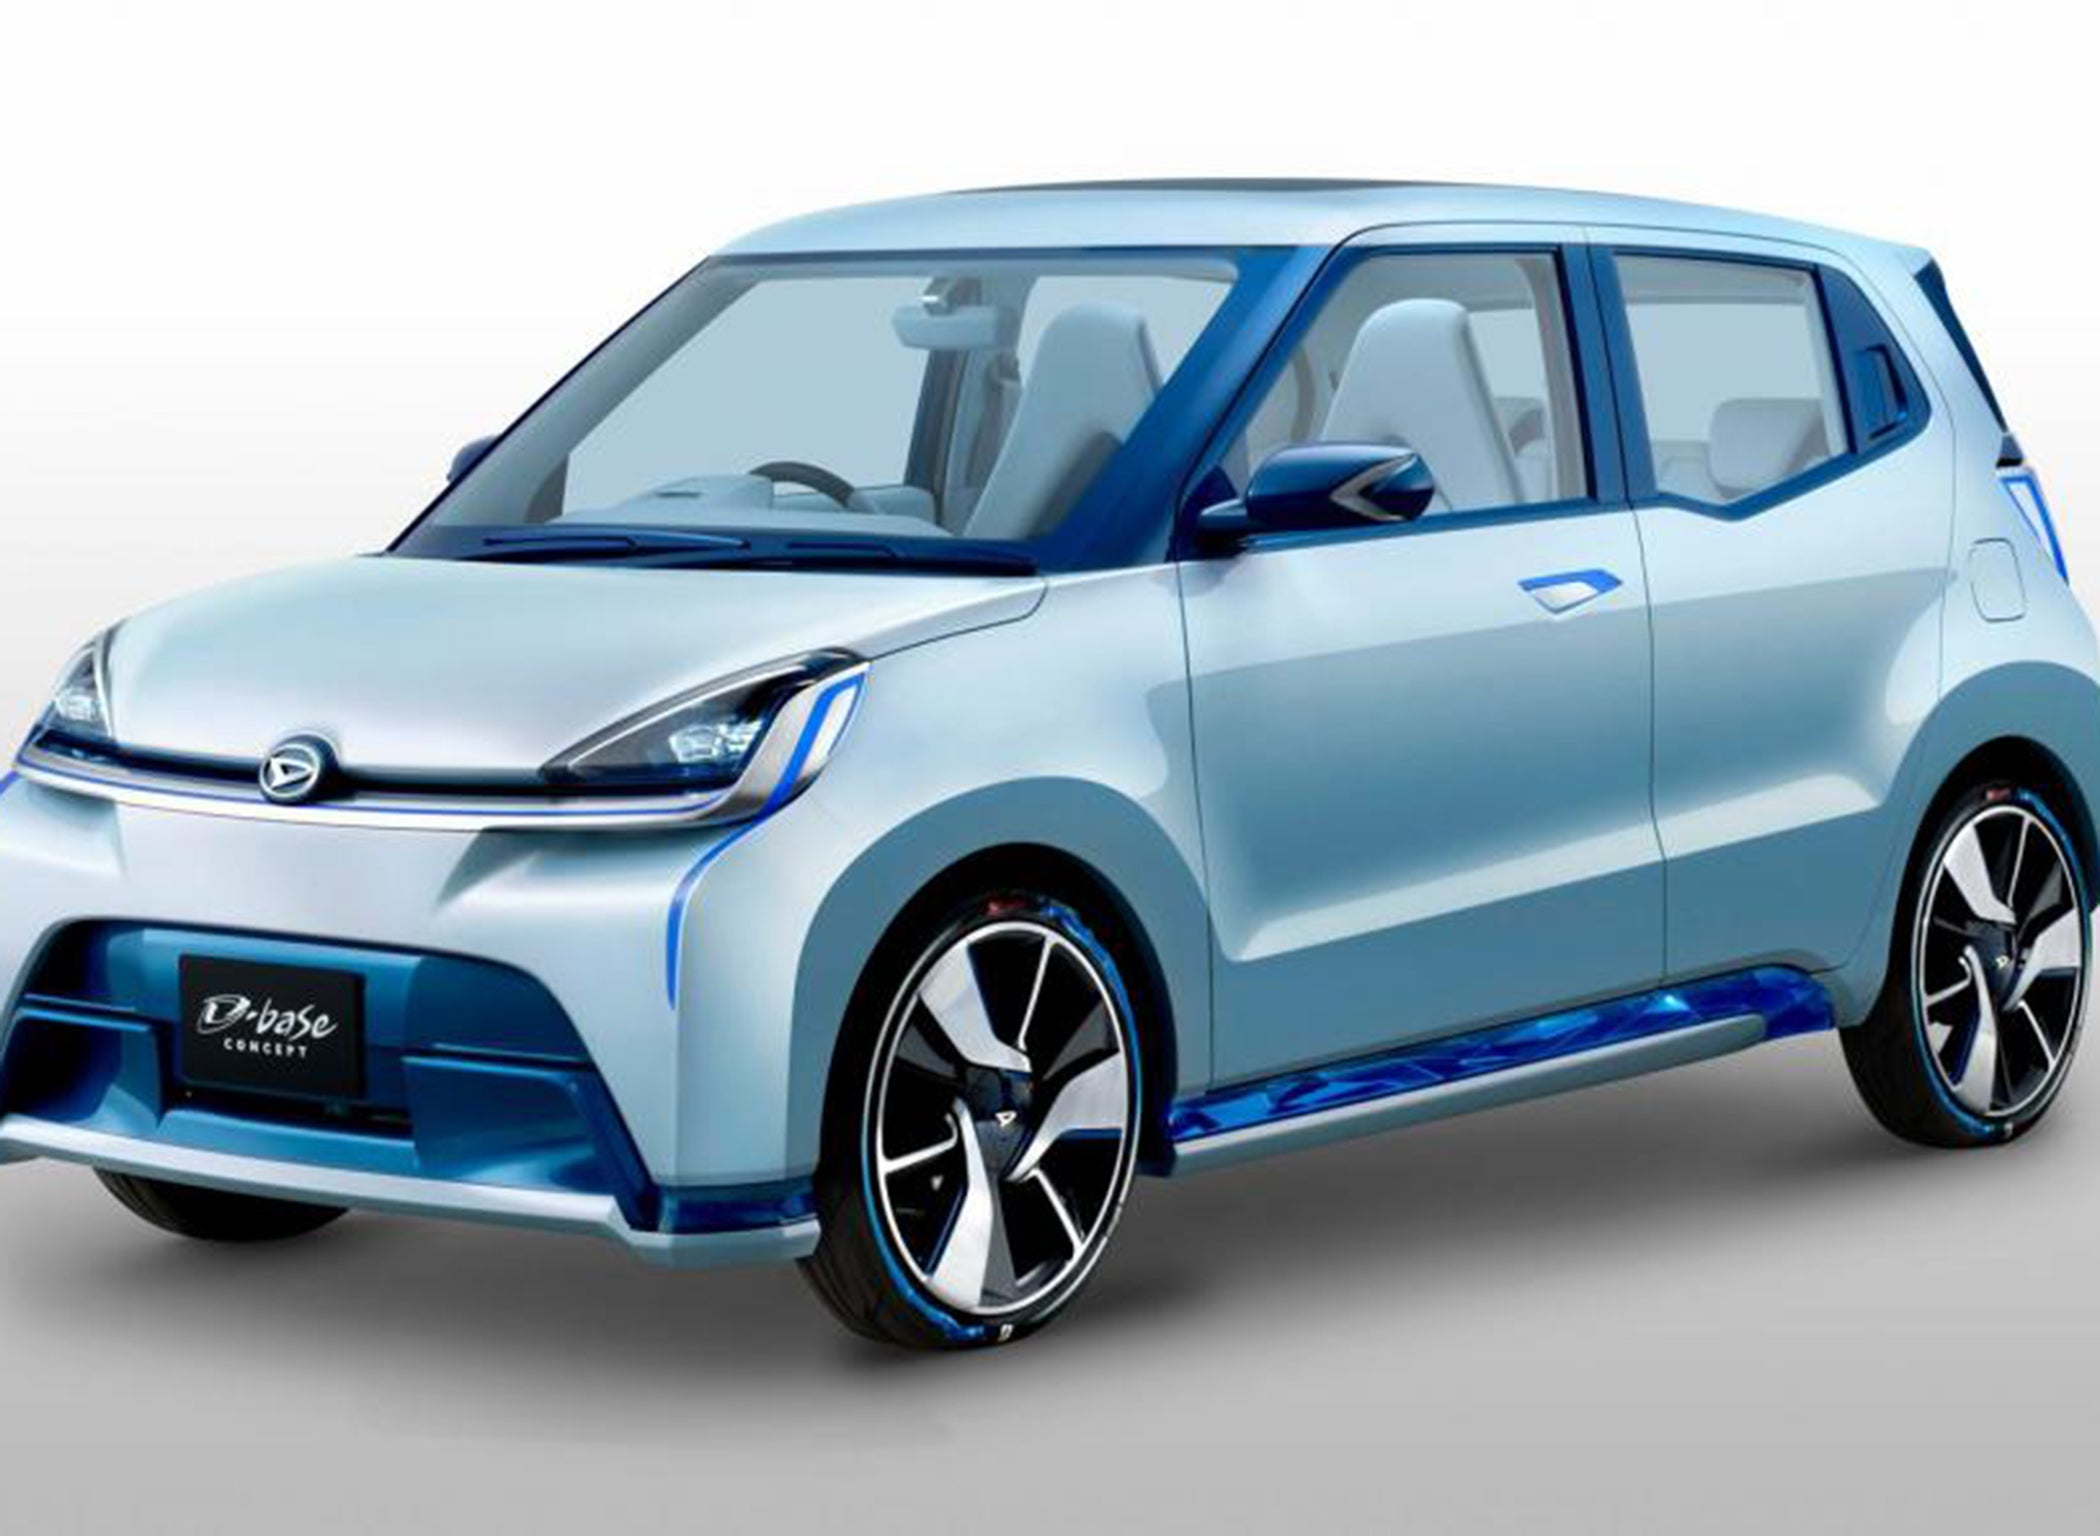 Daihatsu - latest news, breaking stories and comment - The Independent